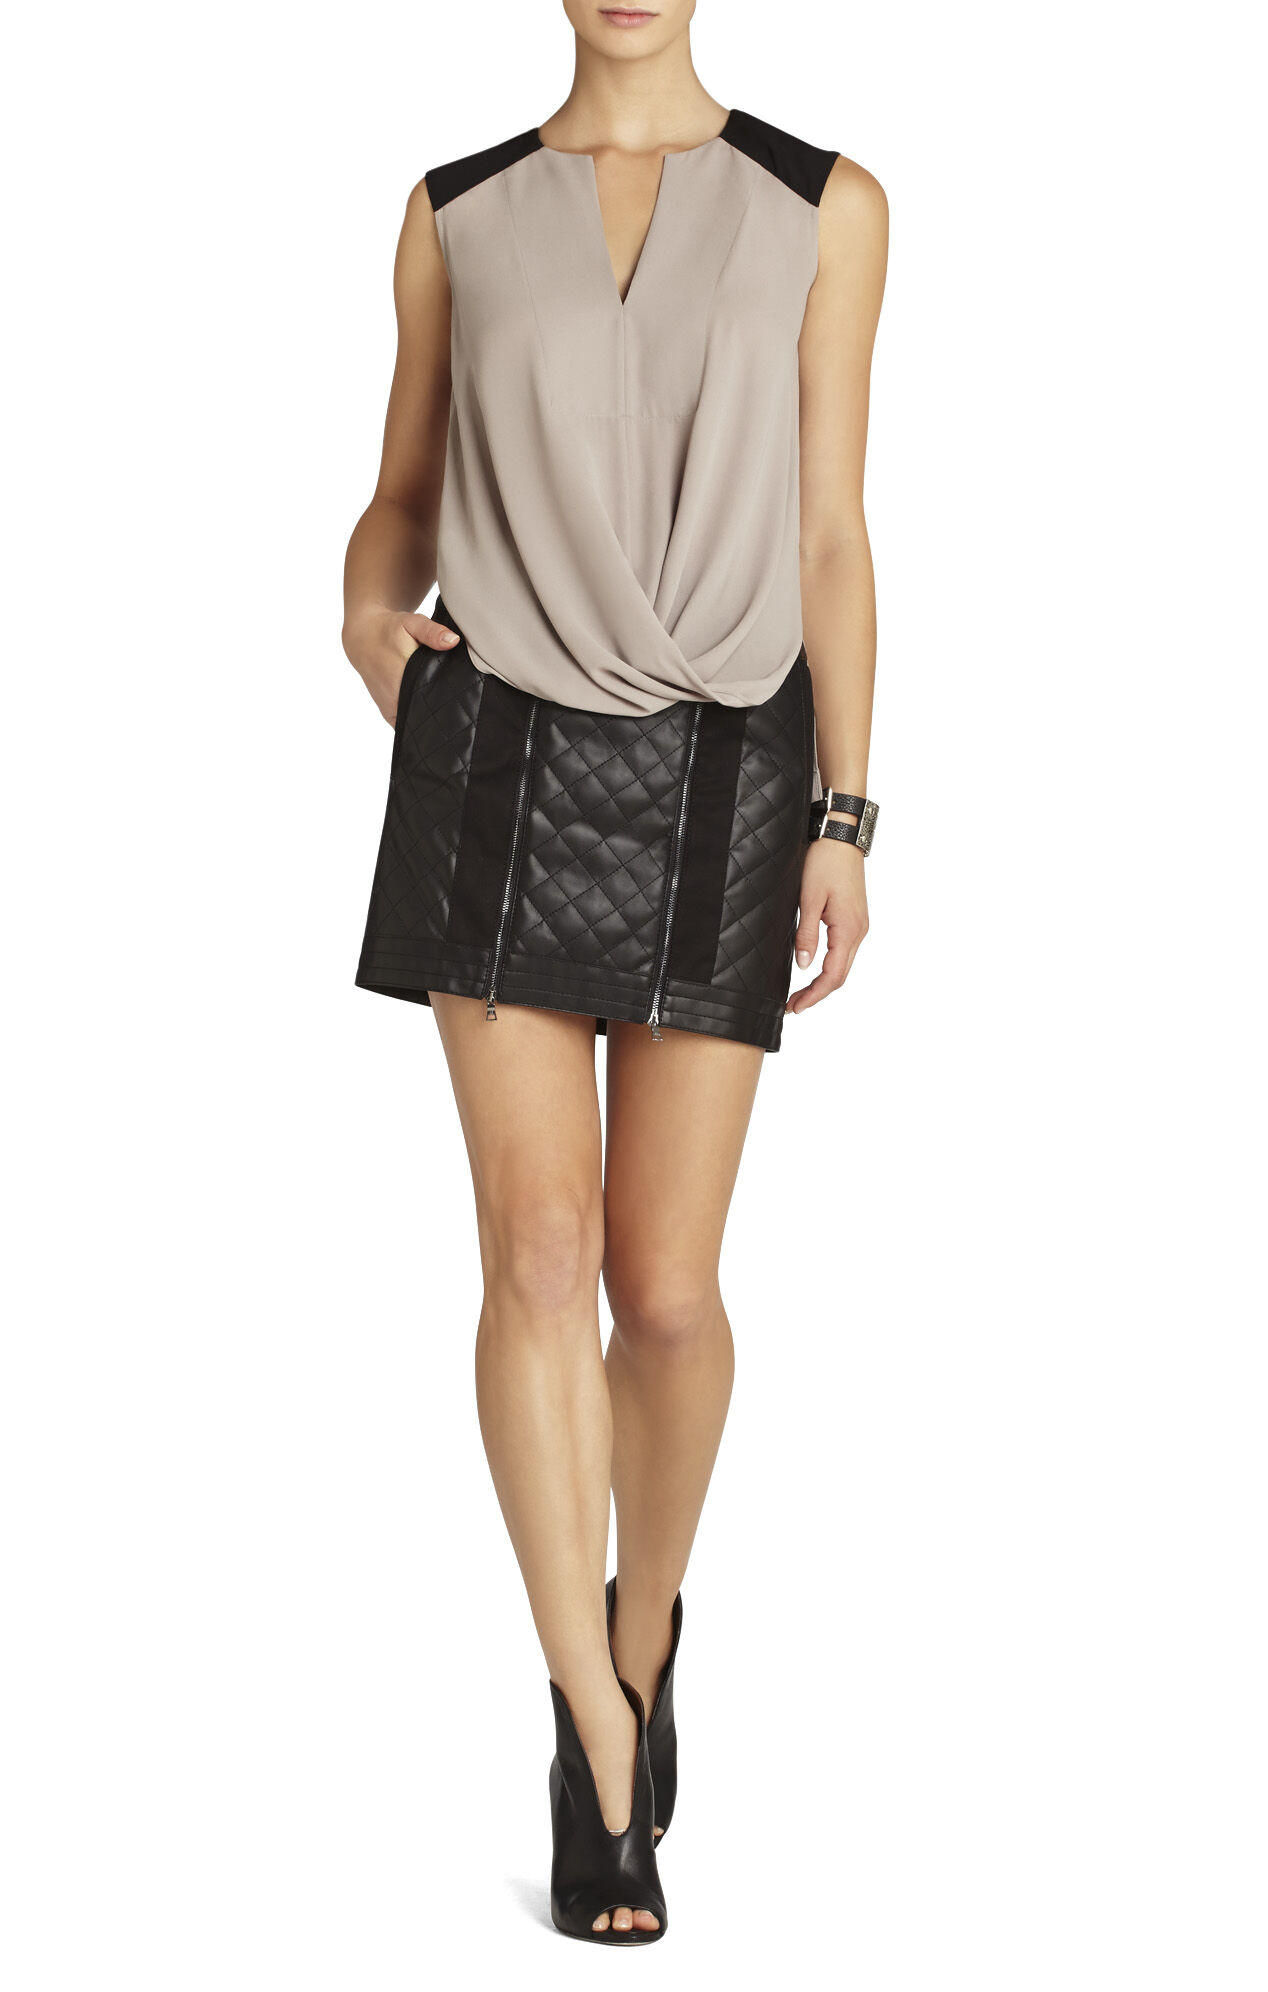 Gisele Draped Sleeveless Top